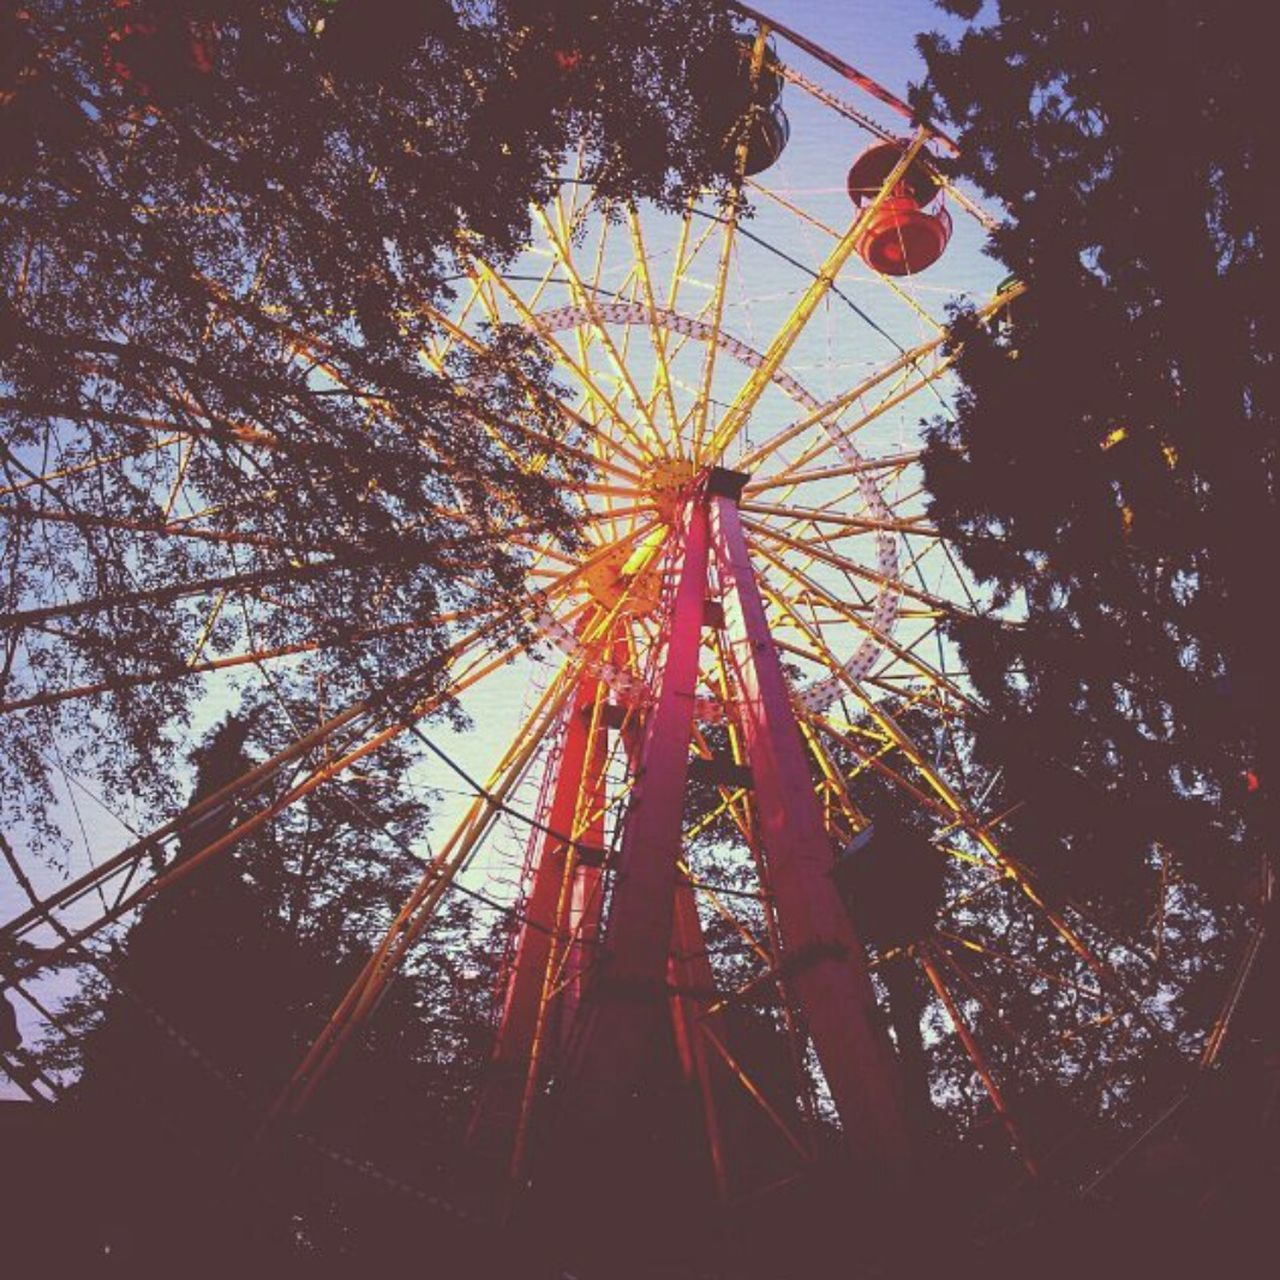 amusement park, low angle view, tree, arts culture and entertainment, amusement park ride, ferris wheel, no people, outdoors, sky, day, branch